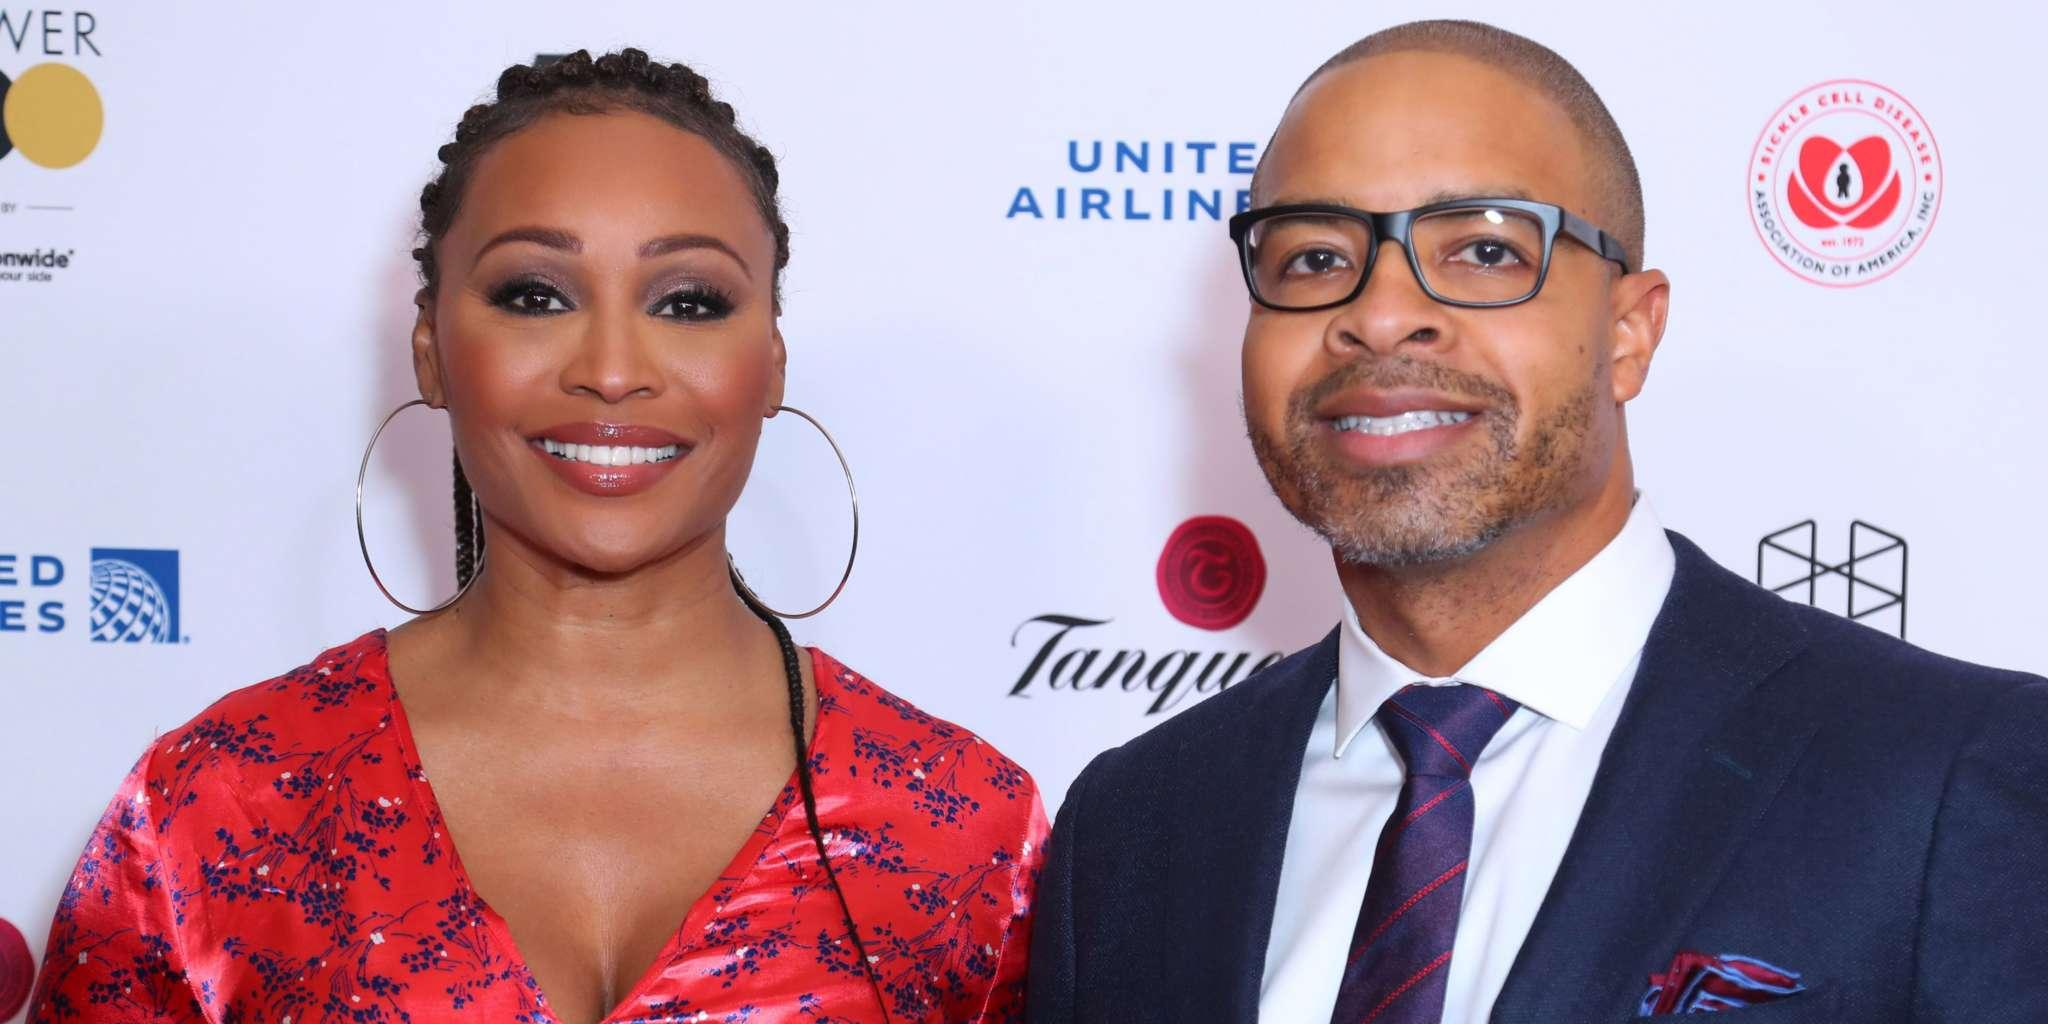 Cynthia Bailey Flaunts Her Curves For Mike Hill And Fans Say She's Displaying The Snake In The Garden Of Eden